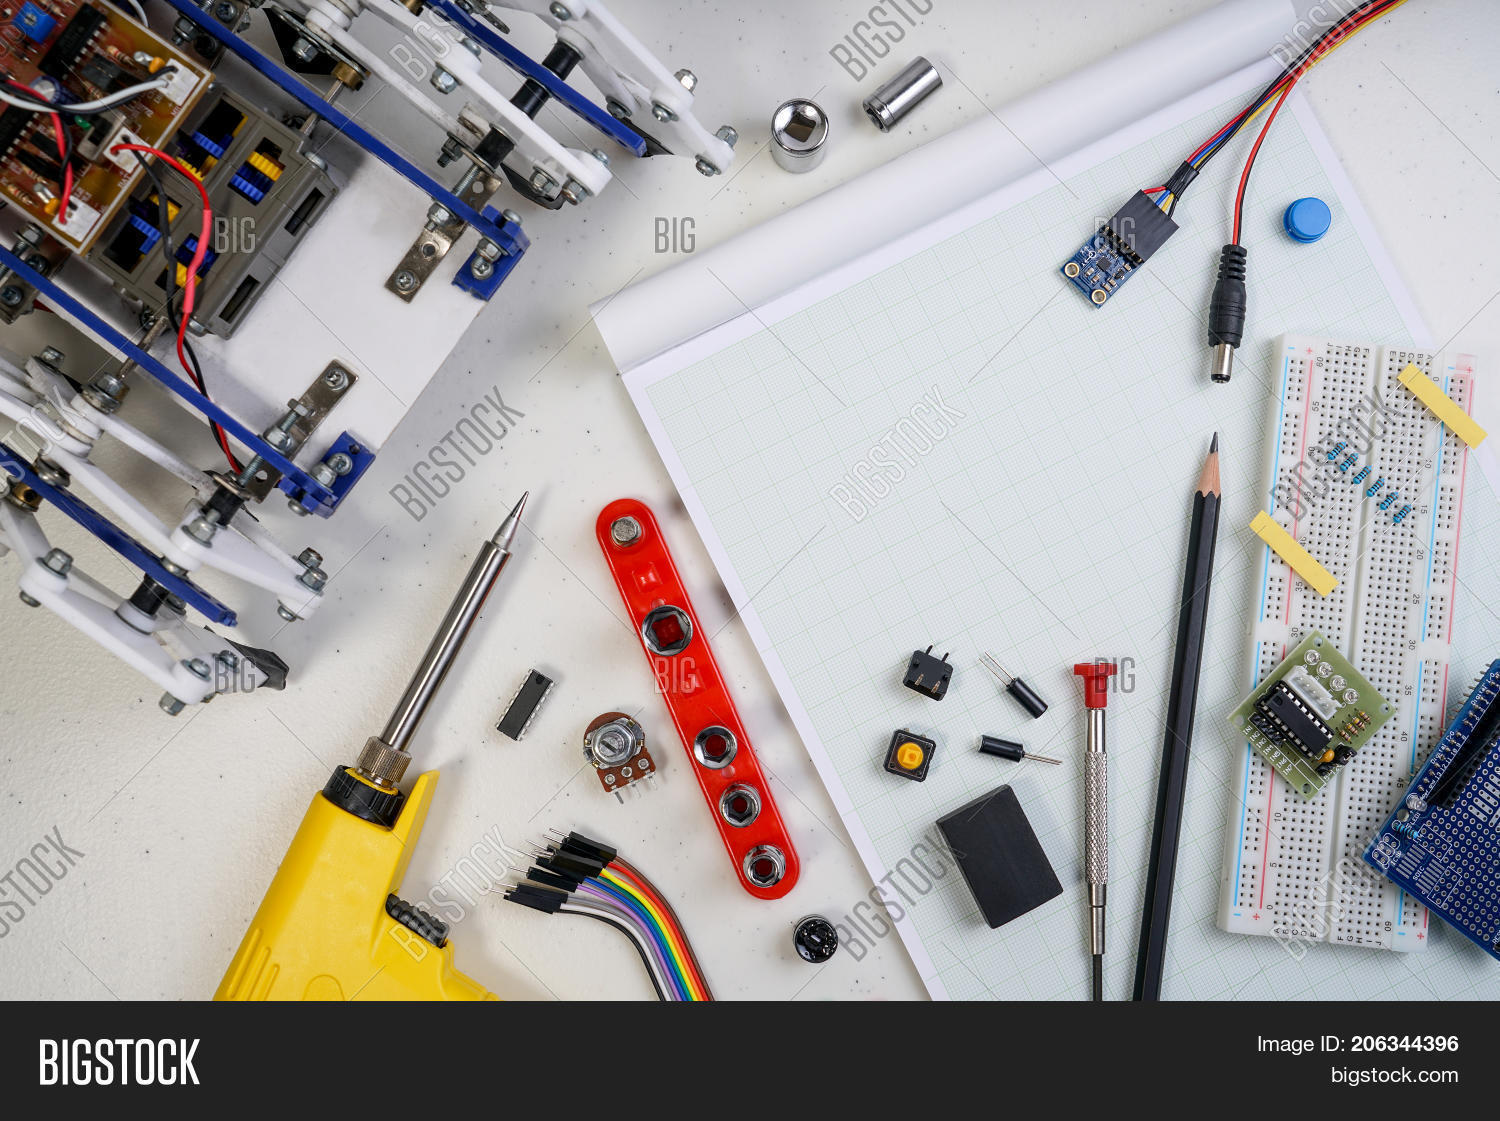 Stem Diy Electronic Image Photo Free Trial Bigstock Build Circuit Or Kit Line Tracking Walking Robot Competition Ideas Engineer